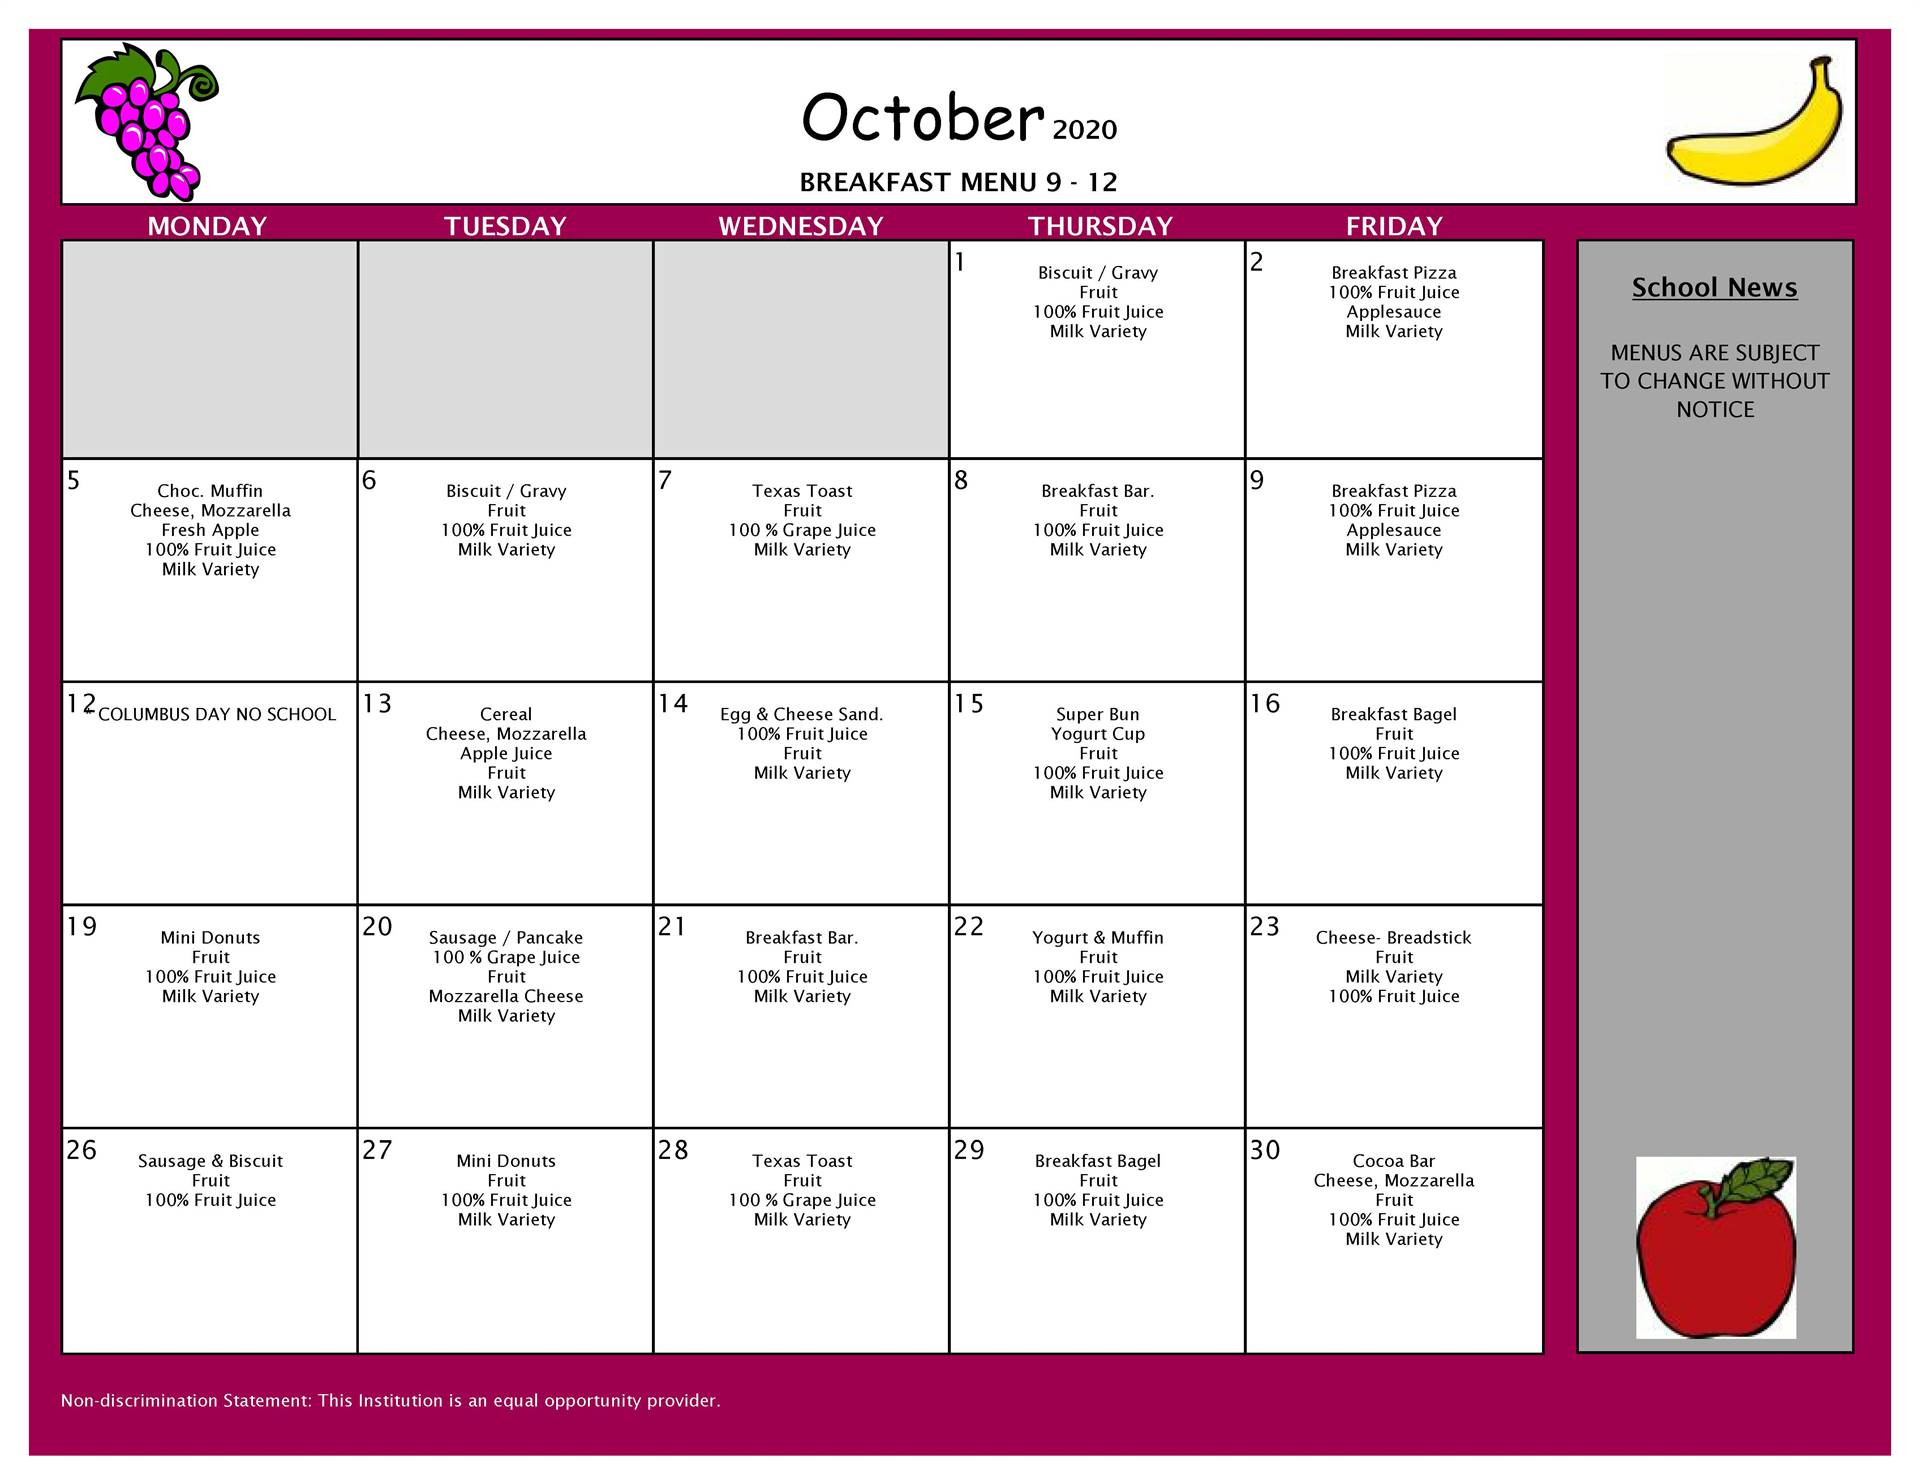 October Breakfast Menu 9-12